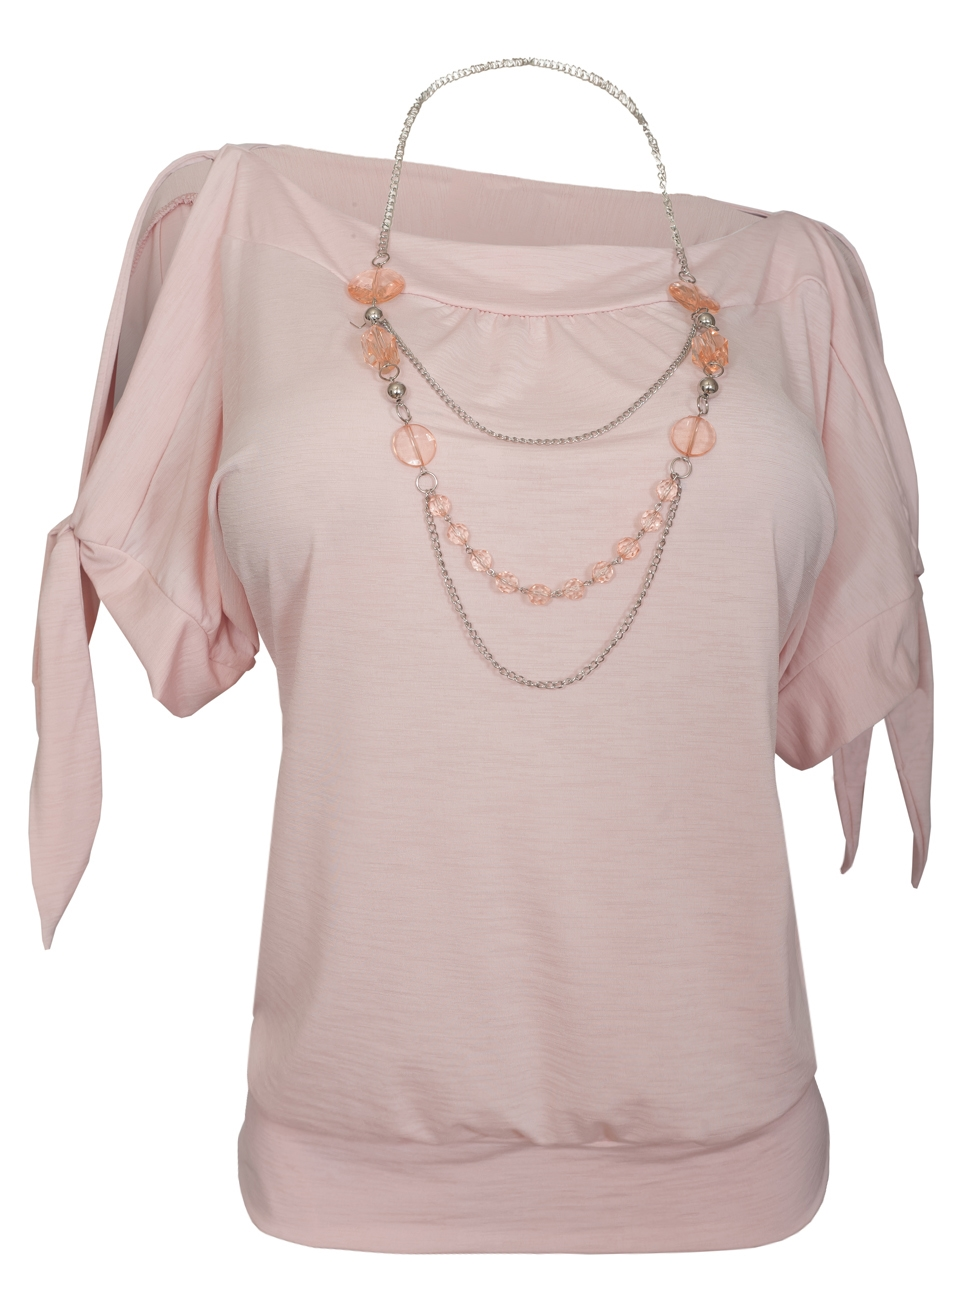 Women's Cold Shoulder Top with Necklace Detail Pink